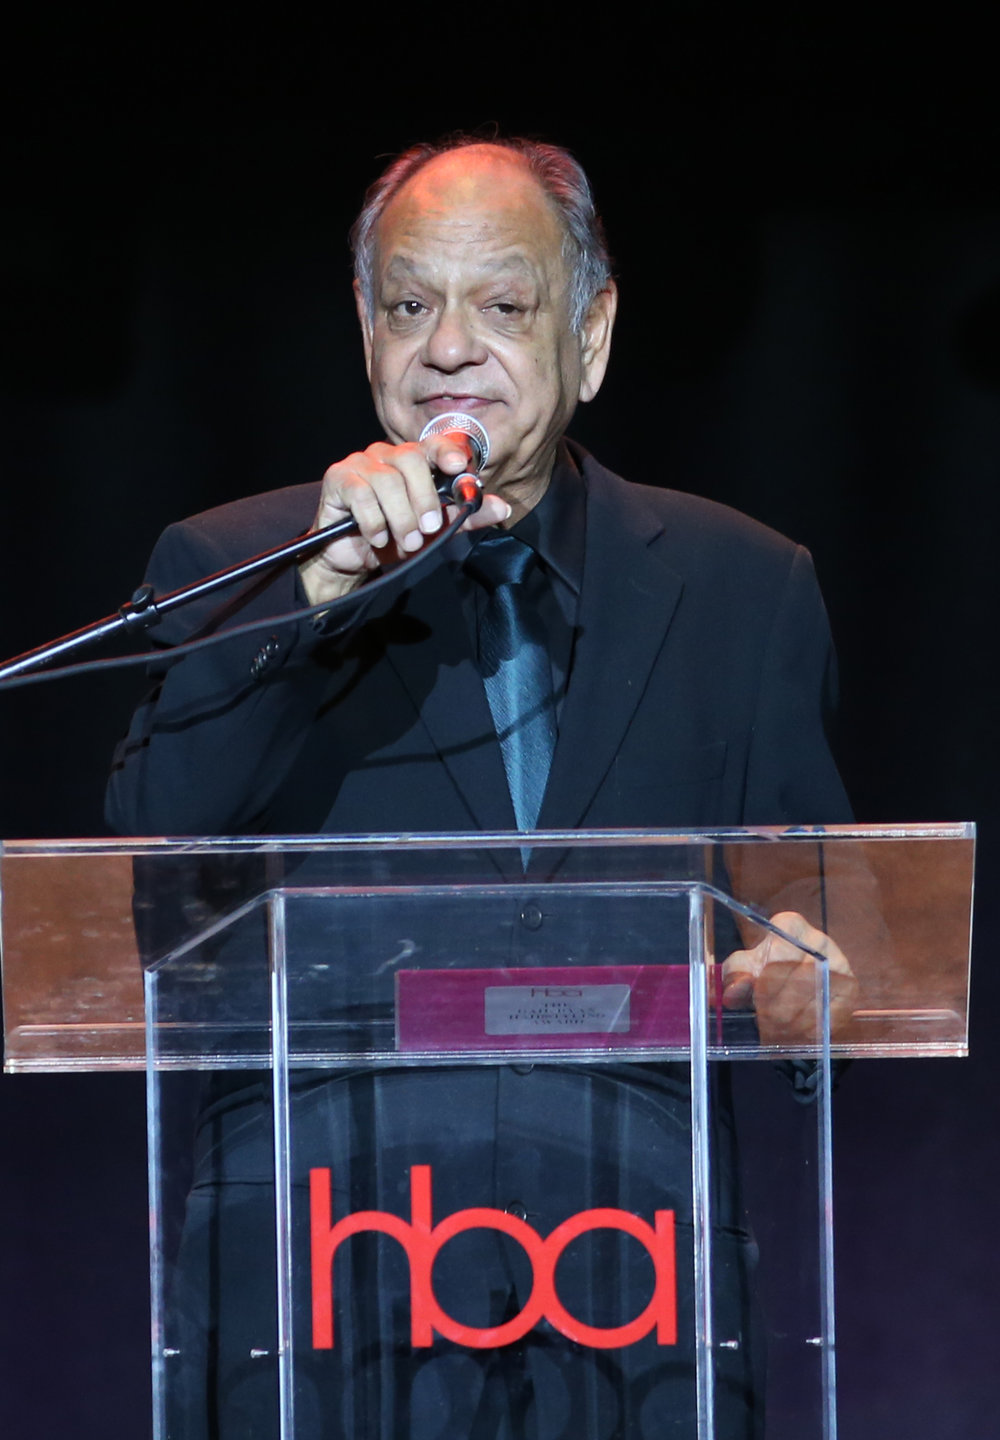 Cheech Marin | Feb 25, 2018, Hollywood Beauty Awards held at the Avalon